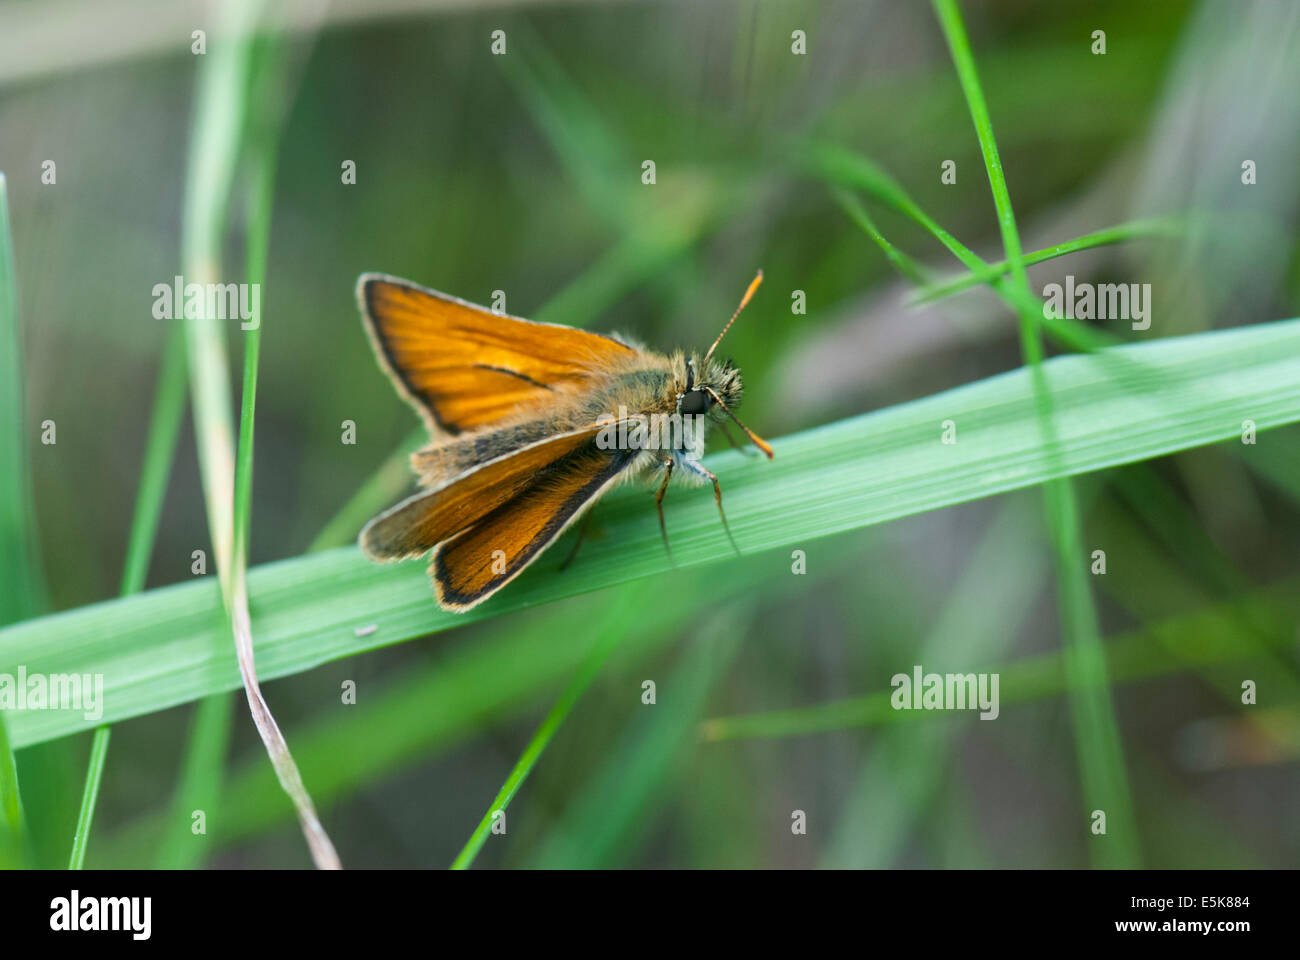 A male Small skipper, Thymelicus sylvestris, at rest on a blade of grass - Stock Image